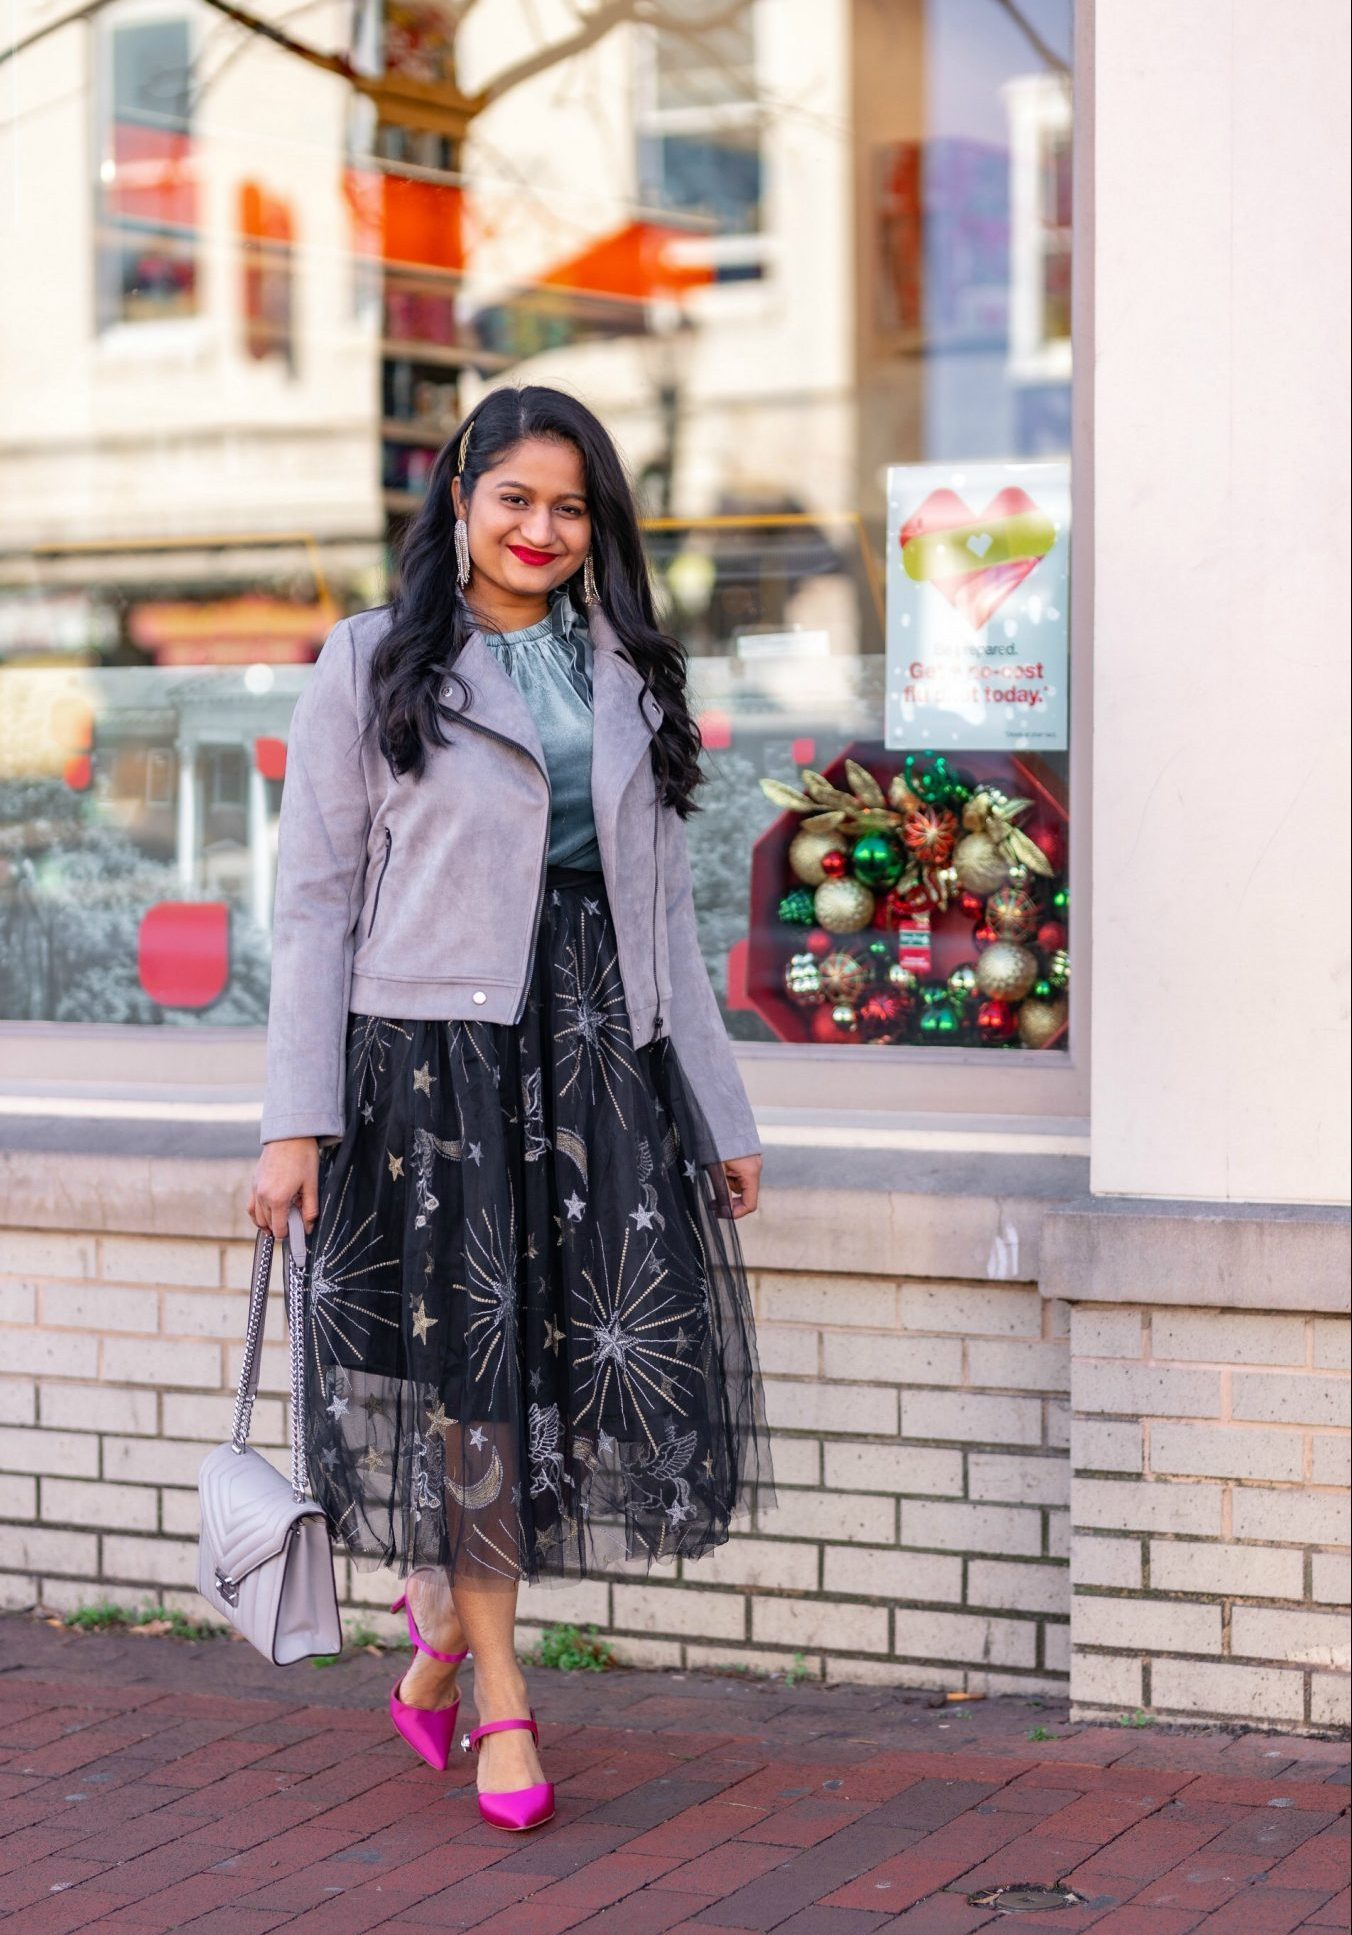 Affordable New Years Eve Outfits to Ring In the New Year featured by top US modest blog, Dreaming Loud: Alcea Rosea Black Tulle tutu Skirt, Velvet Camisole, Banana Republic Satin Pink Heels, Allegra K Fashion Faux Suede Jacket5